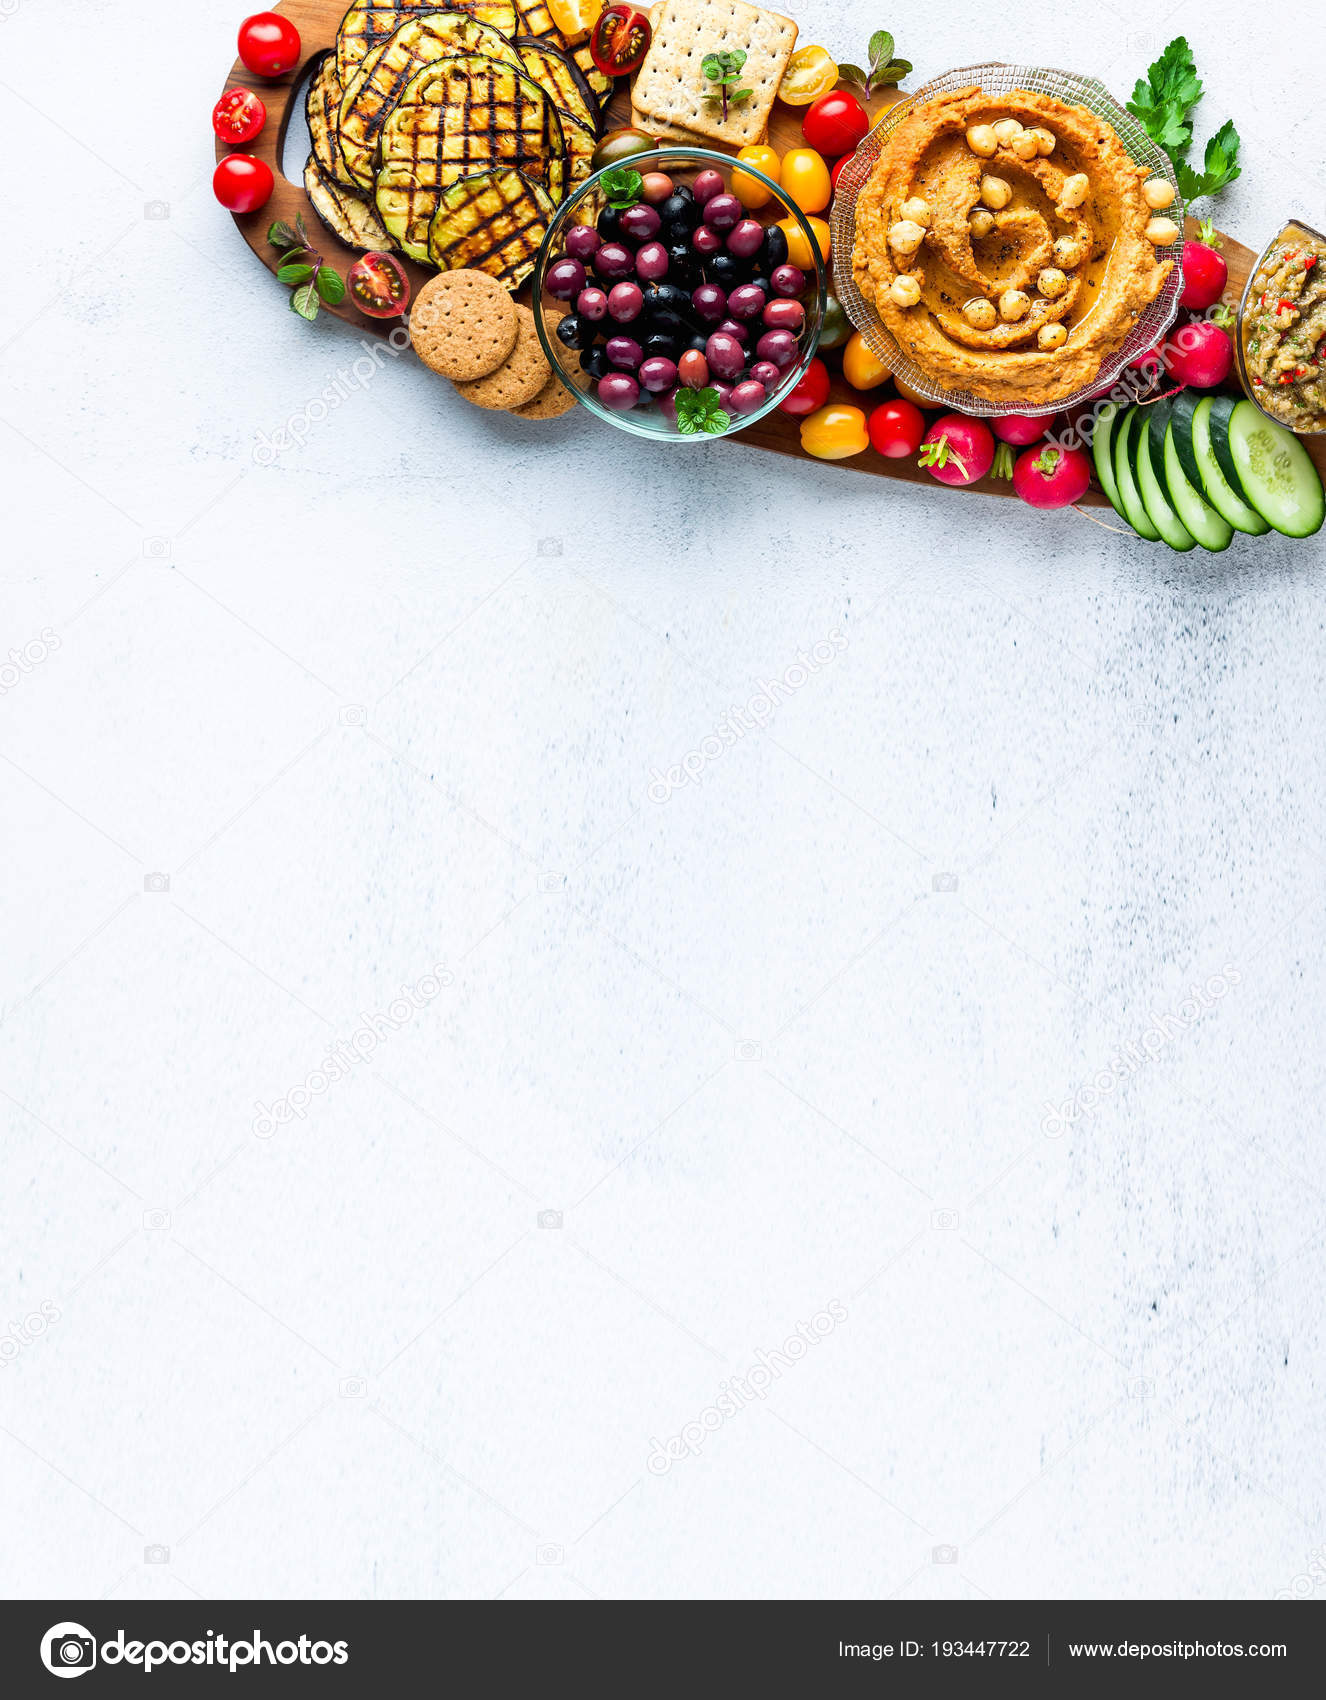 Banner Of Vegan Snack Board Flat Lay Of Various Vegetarian Dish Stock Photo C Irigri 193447722